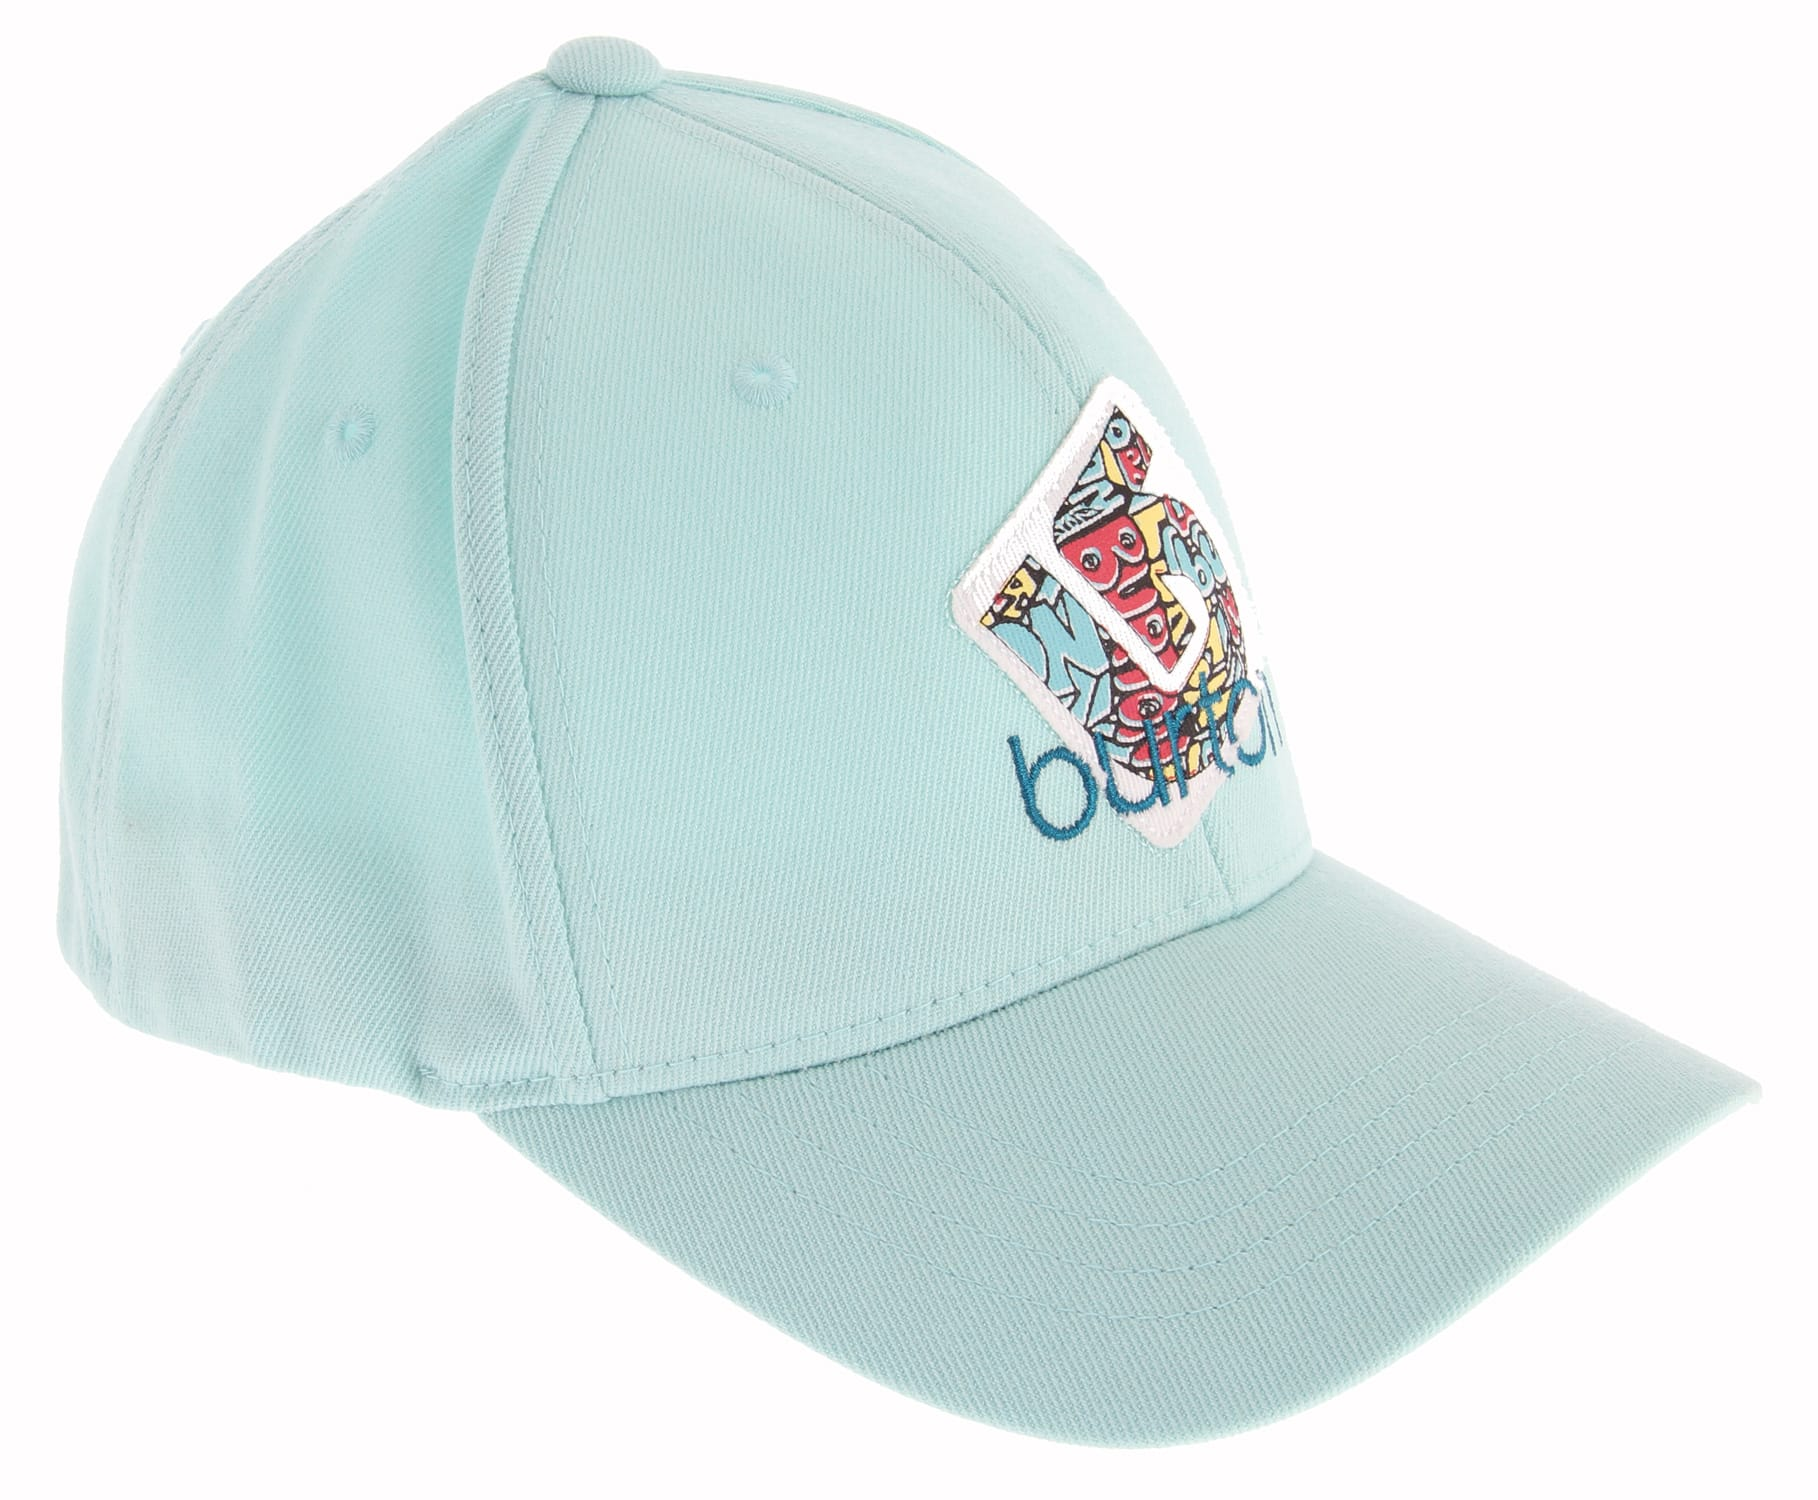 Shop for Burton Sorority House Cap Turk - Women's